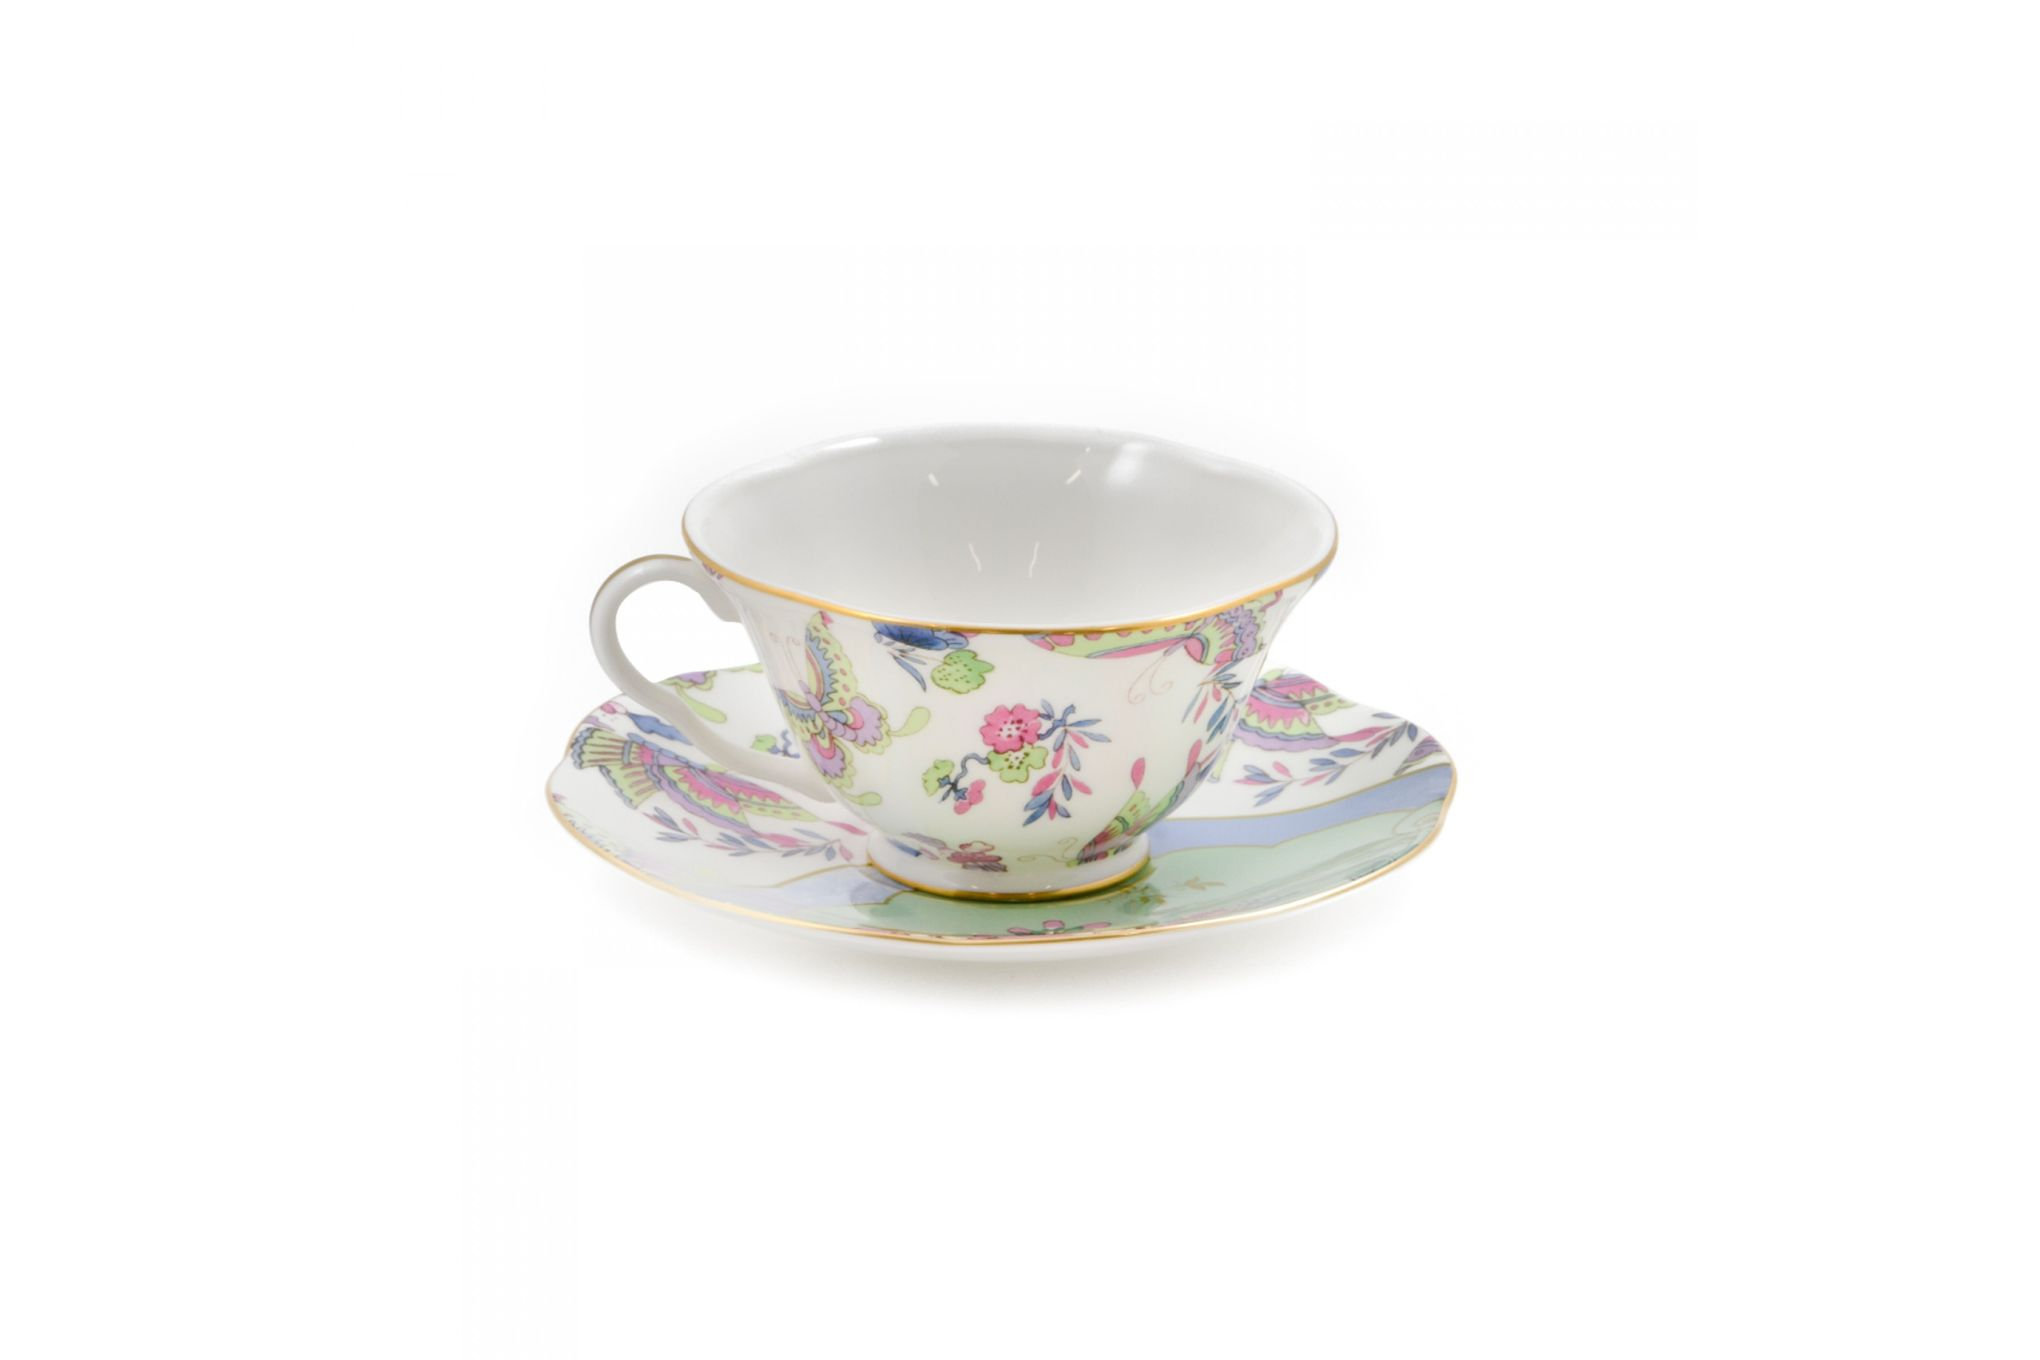 Wedgwood Butterfly Bloom Teacup & Saucer Green thumb 2